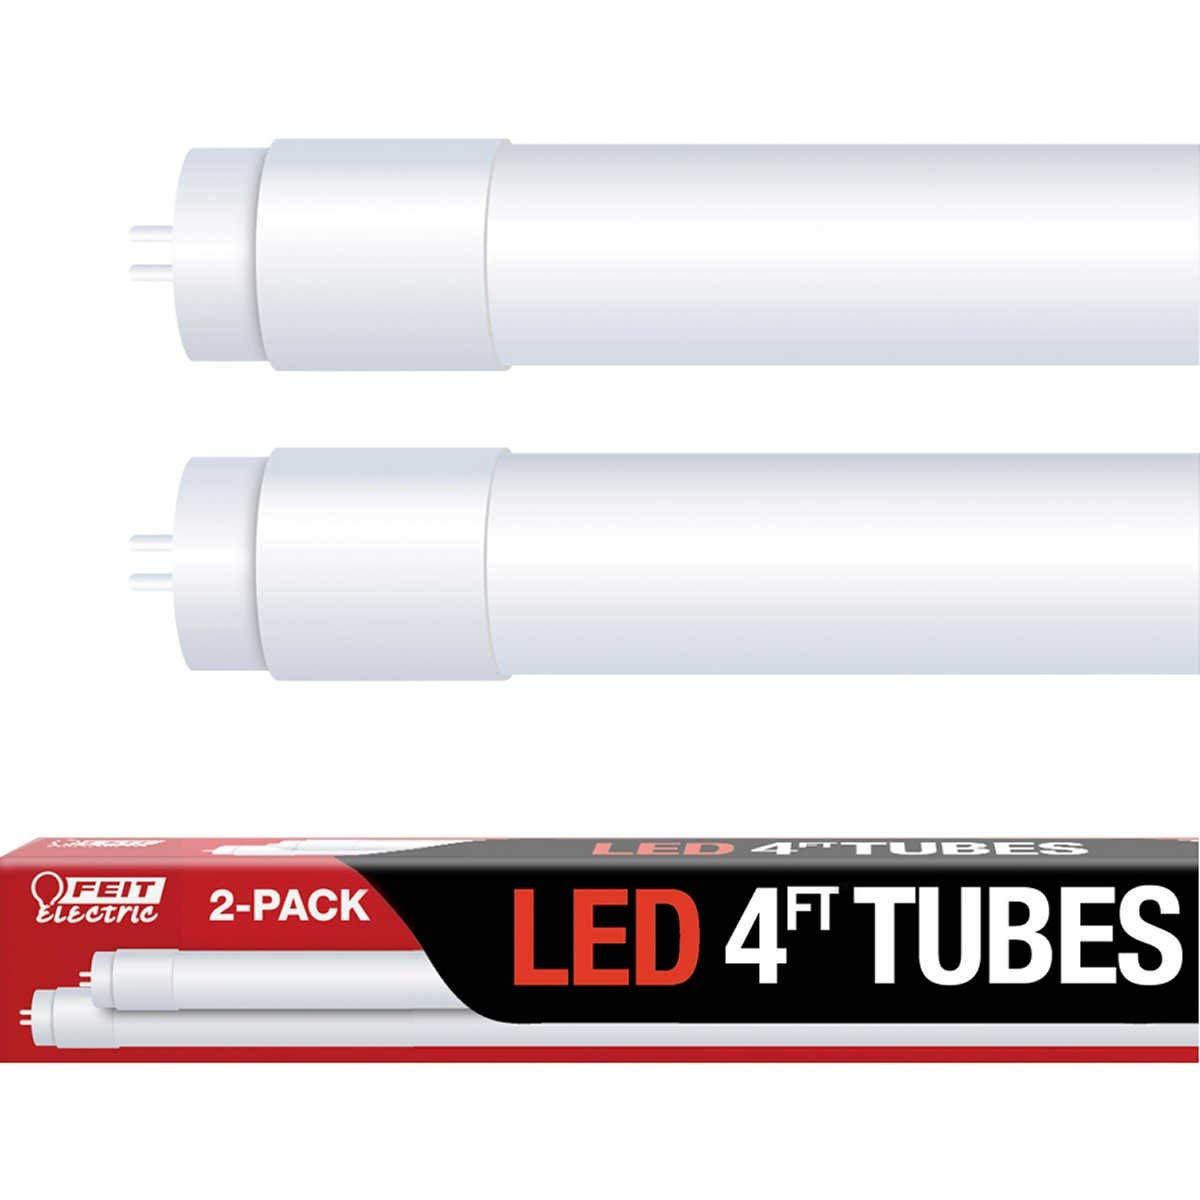 Feit Electric Led 4 Ft Tubes Replaces Fluorescent 1 Pack Light Bulbs Diagram Although Lights Includes 2